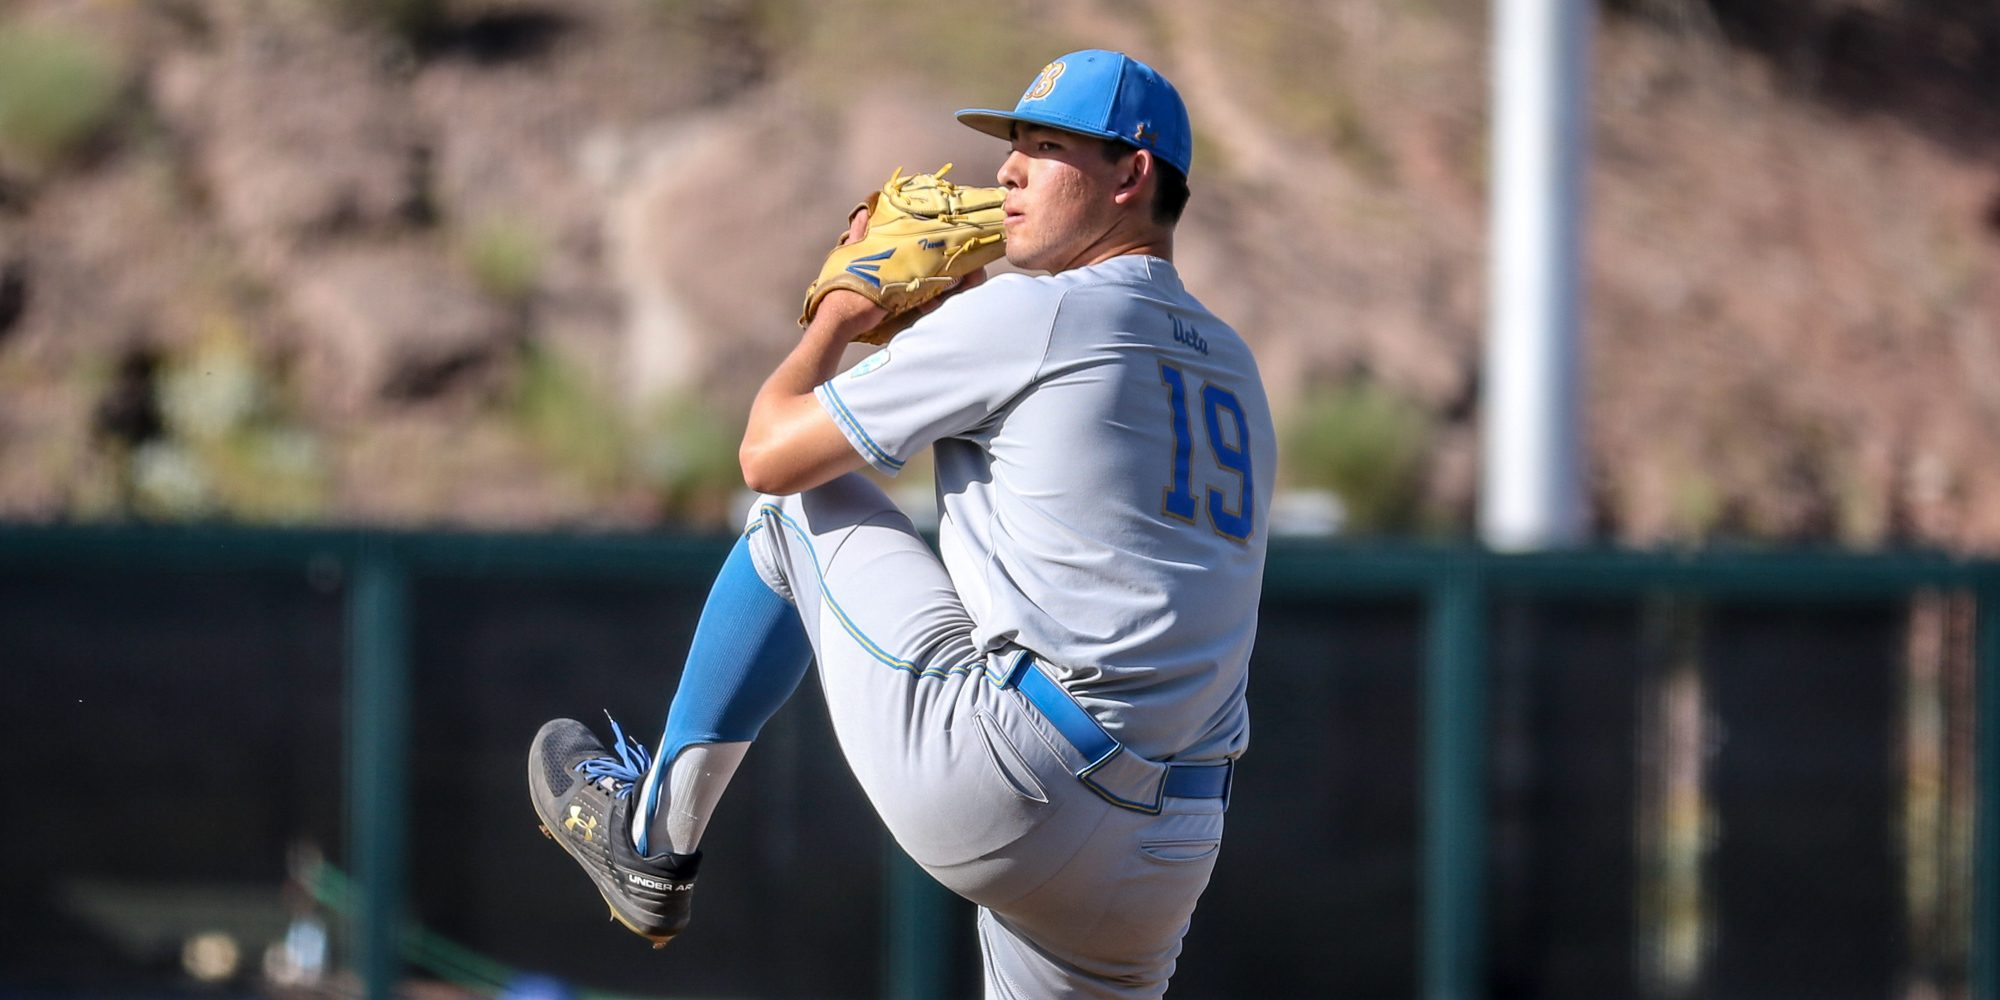 UCLA's Ralston Steps Up When Needed Most • D1Baseball